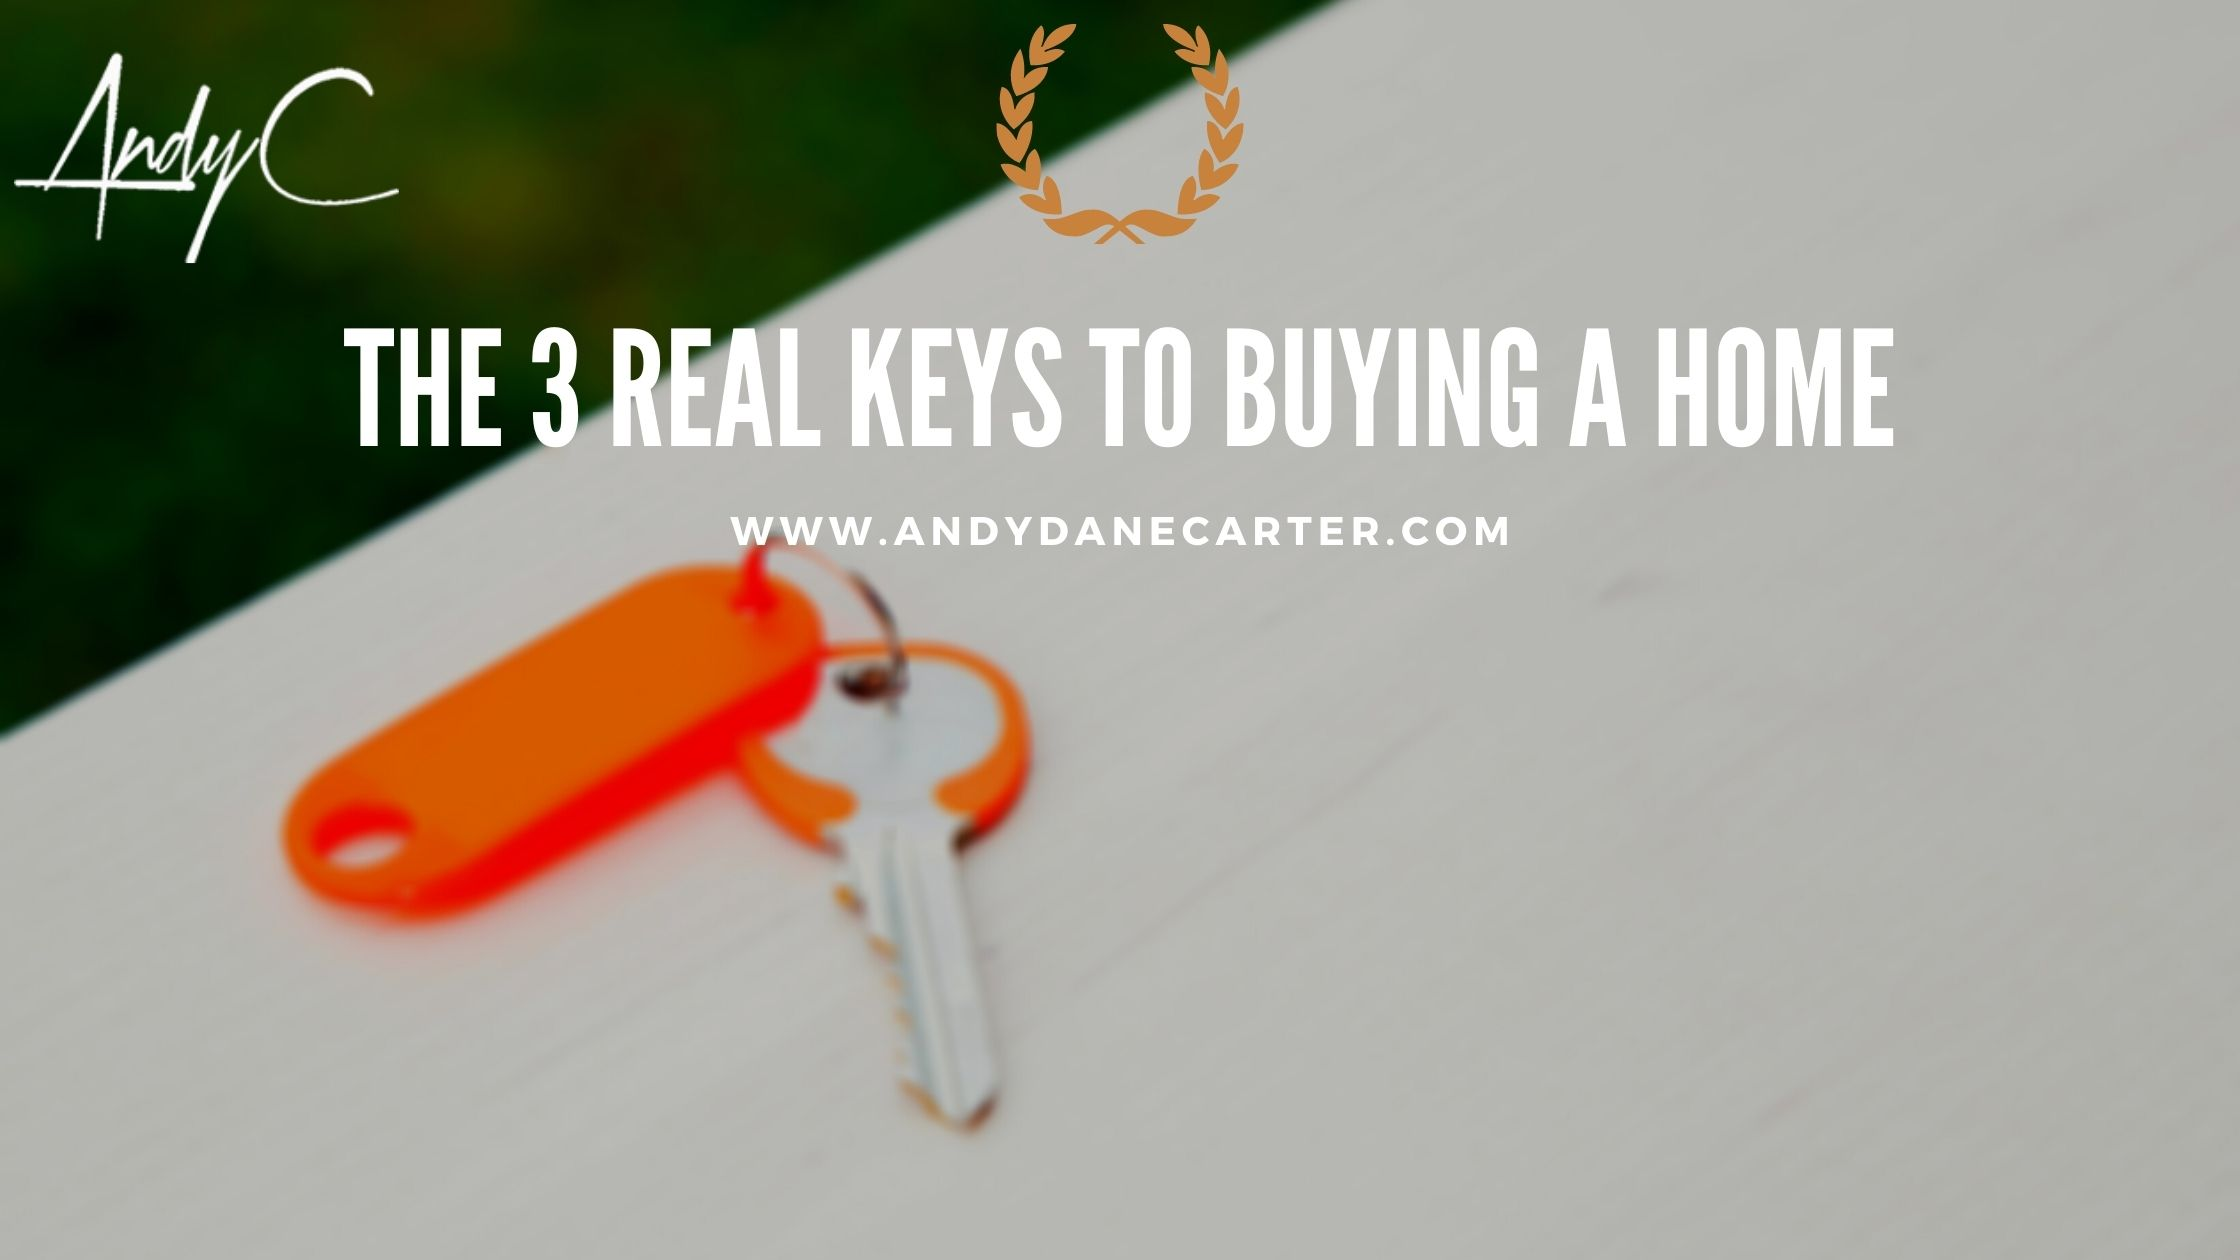 The 3 REAL Keys to Buying a Home